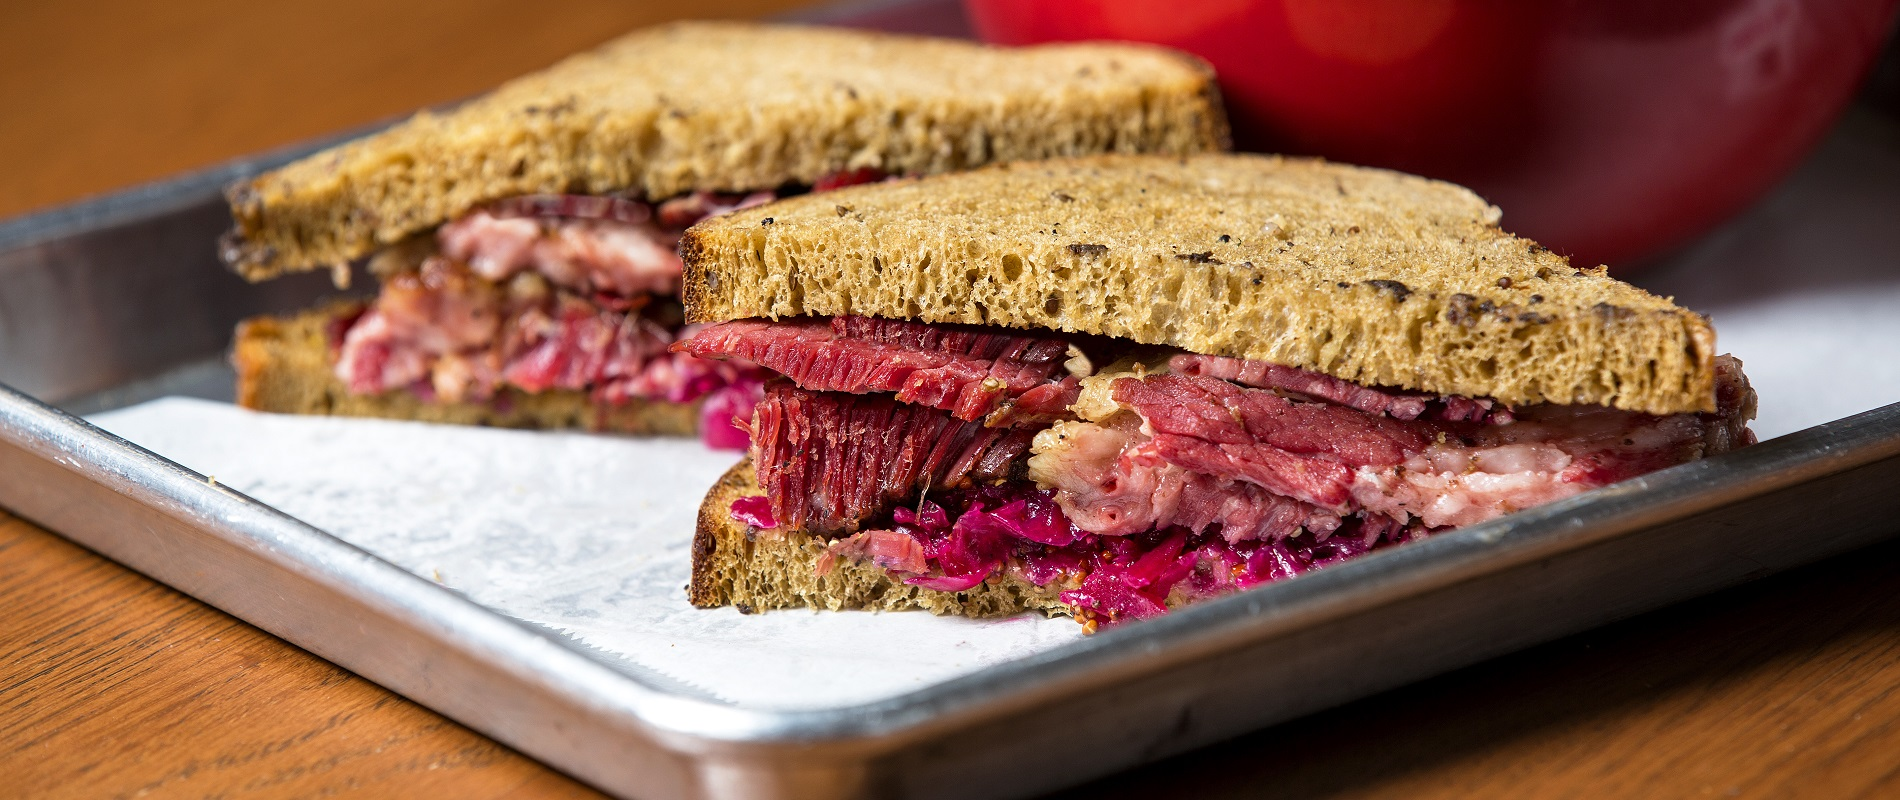 "News Food Editor Andrew Galarneau wants you to travel to Cleveland, and go to Larder Delicatessen and Bakery to ""bite into the pastrami sandwich, lush, tender and smoky on house-baked rye bread, leavened with the crunchy zing of red sauerkraut and housemade mustard. (Karin McKenna/Special to The News)"